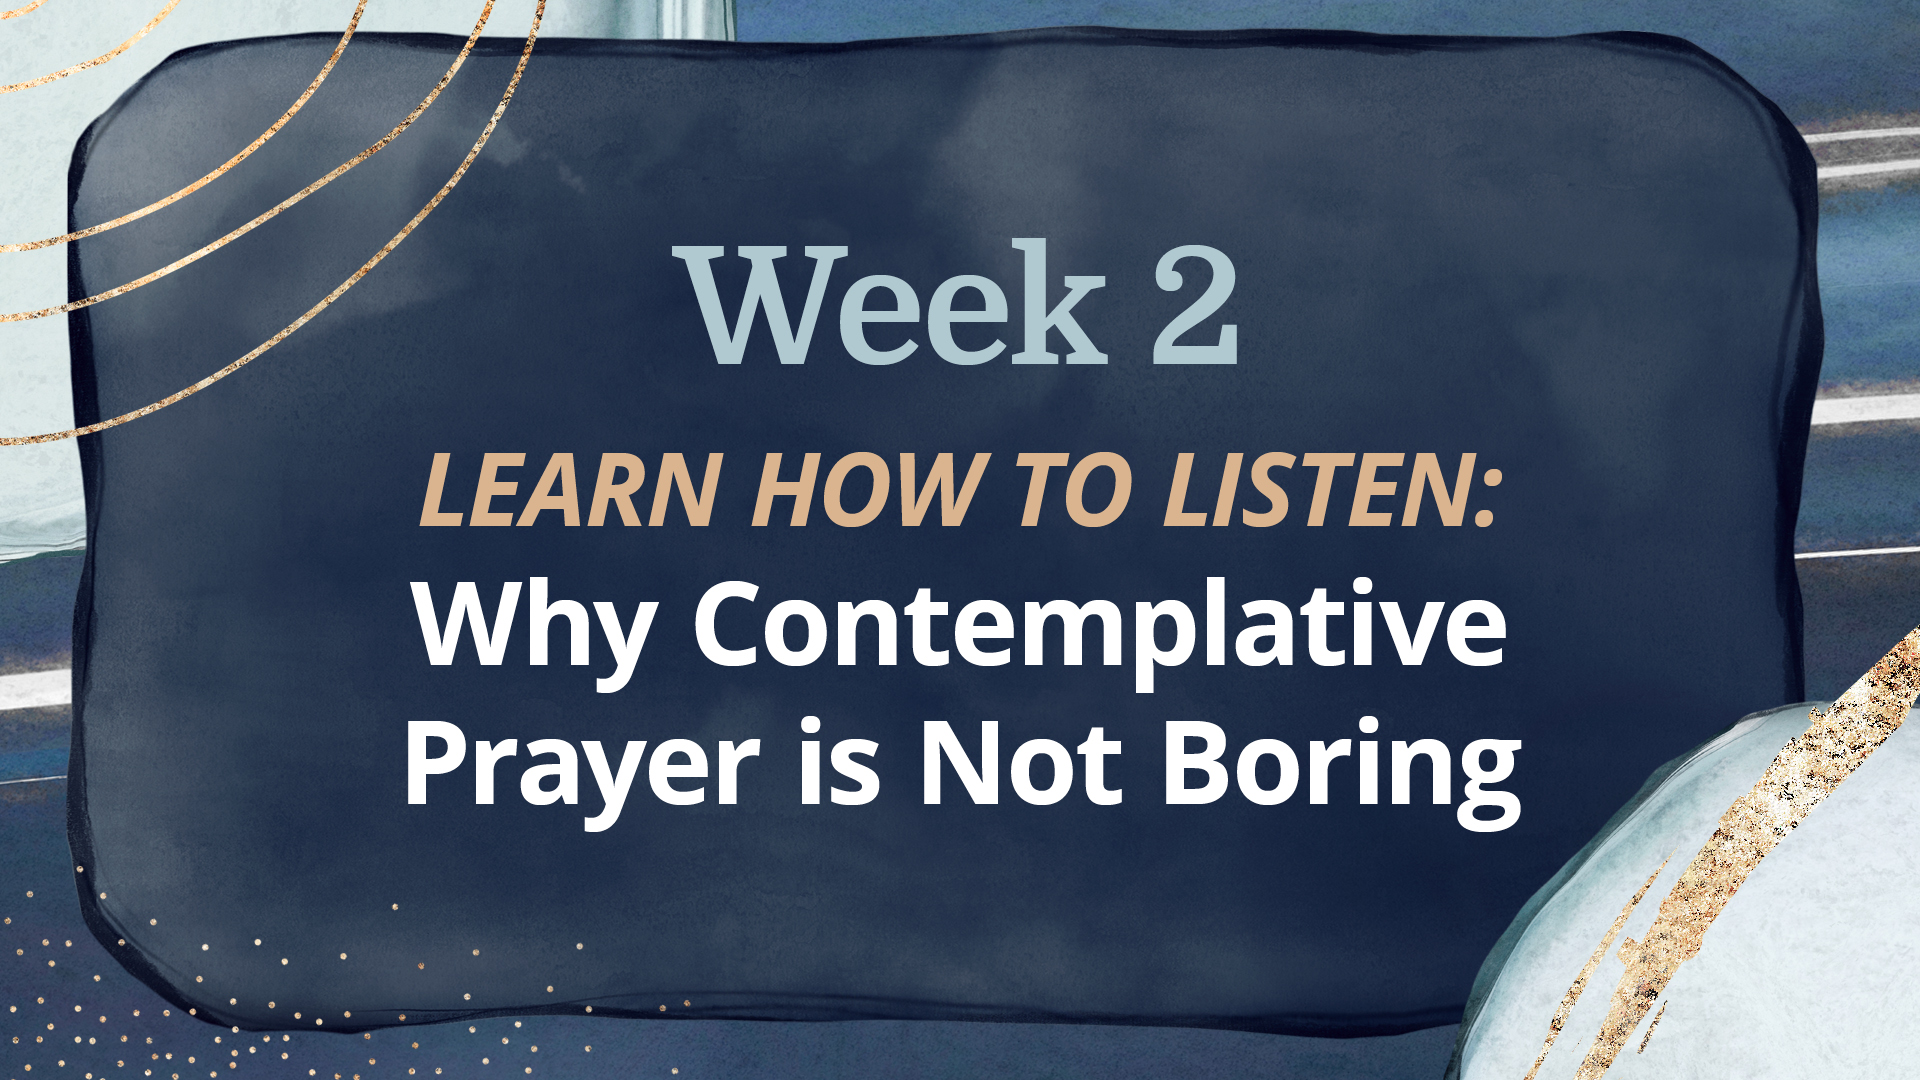 WEEK 2: Why Contemplative Prayer Is Not Boring